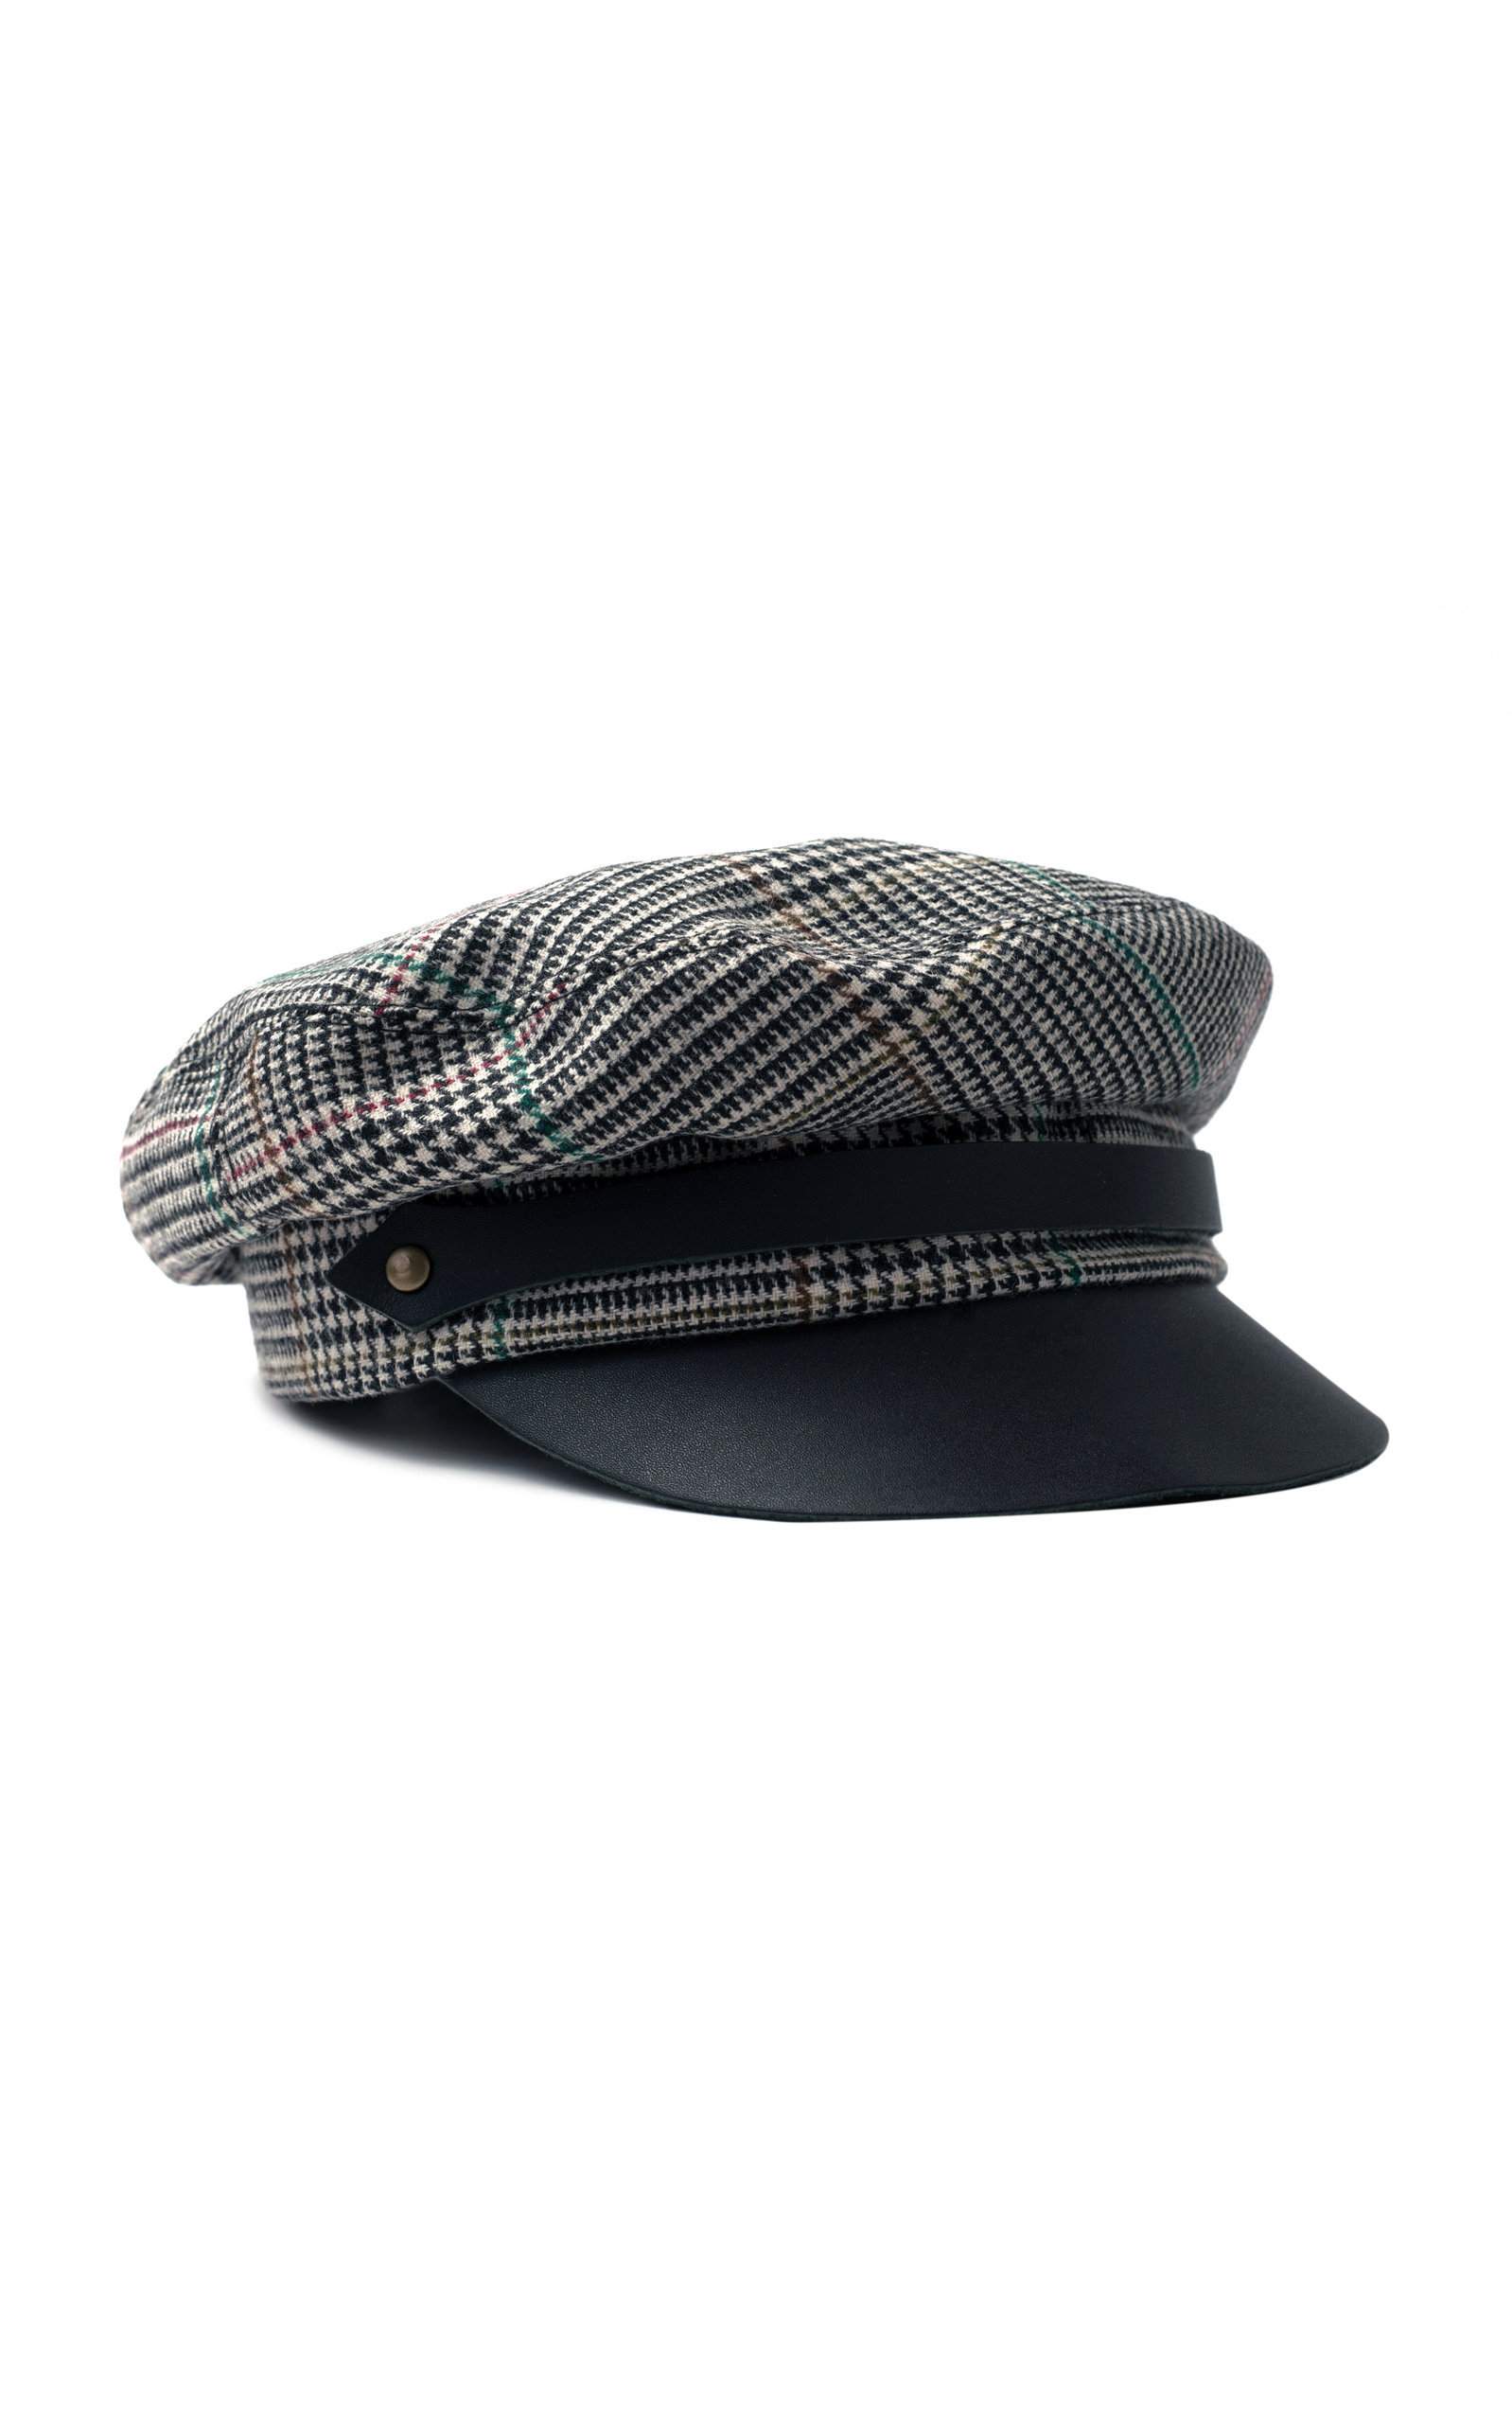 GLEN PLAID CORTO CHAUFFEUR HAT